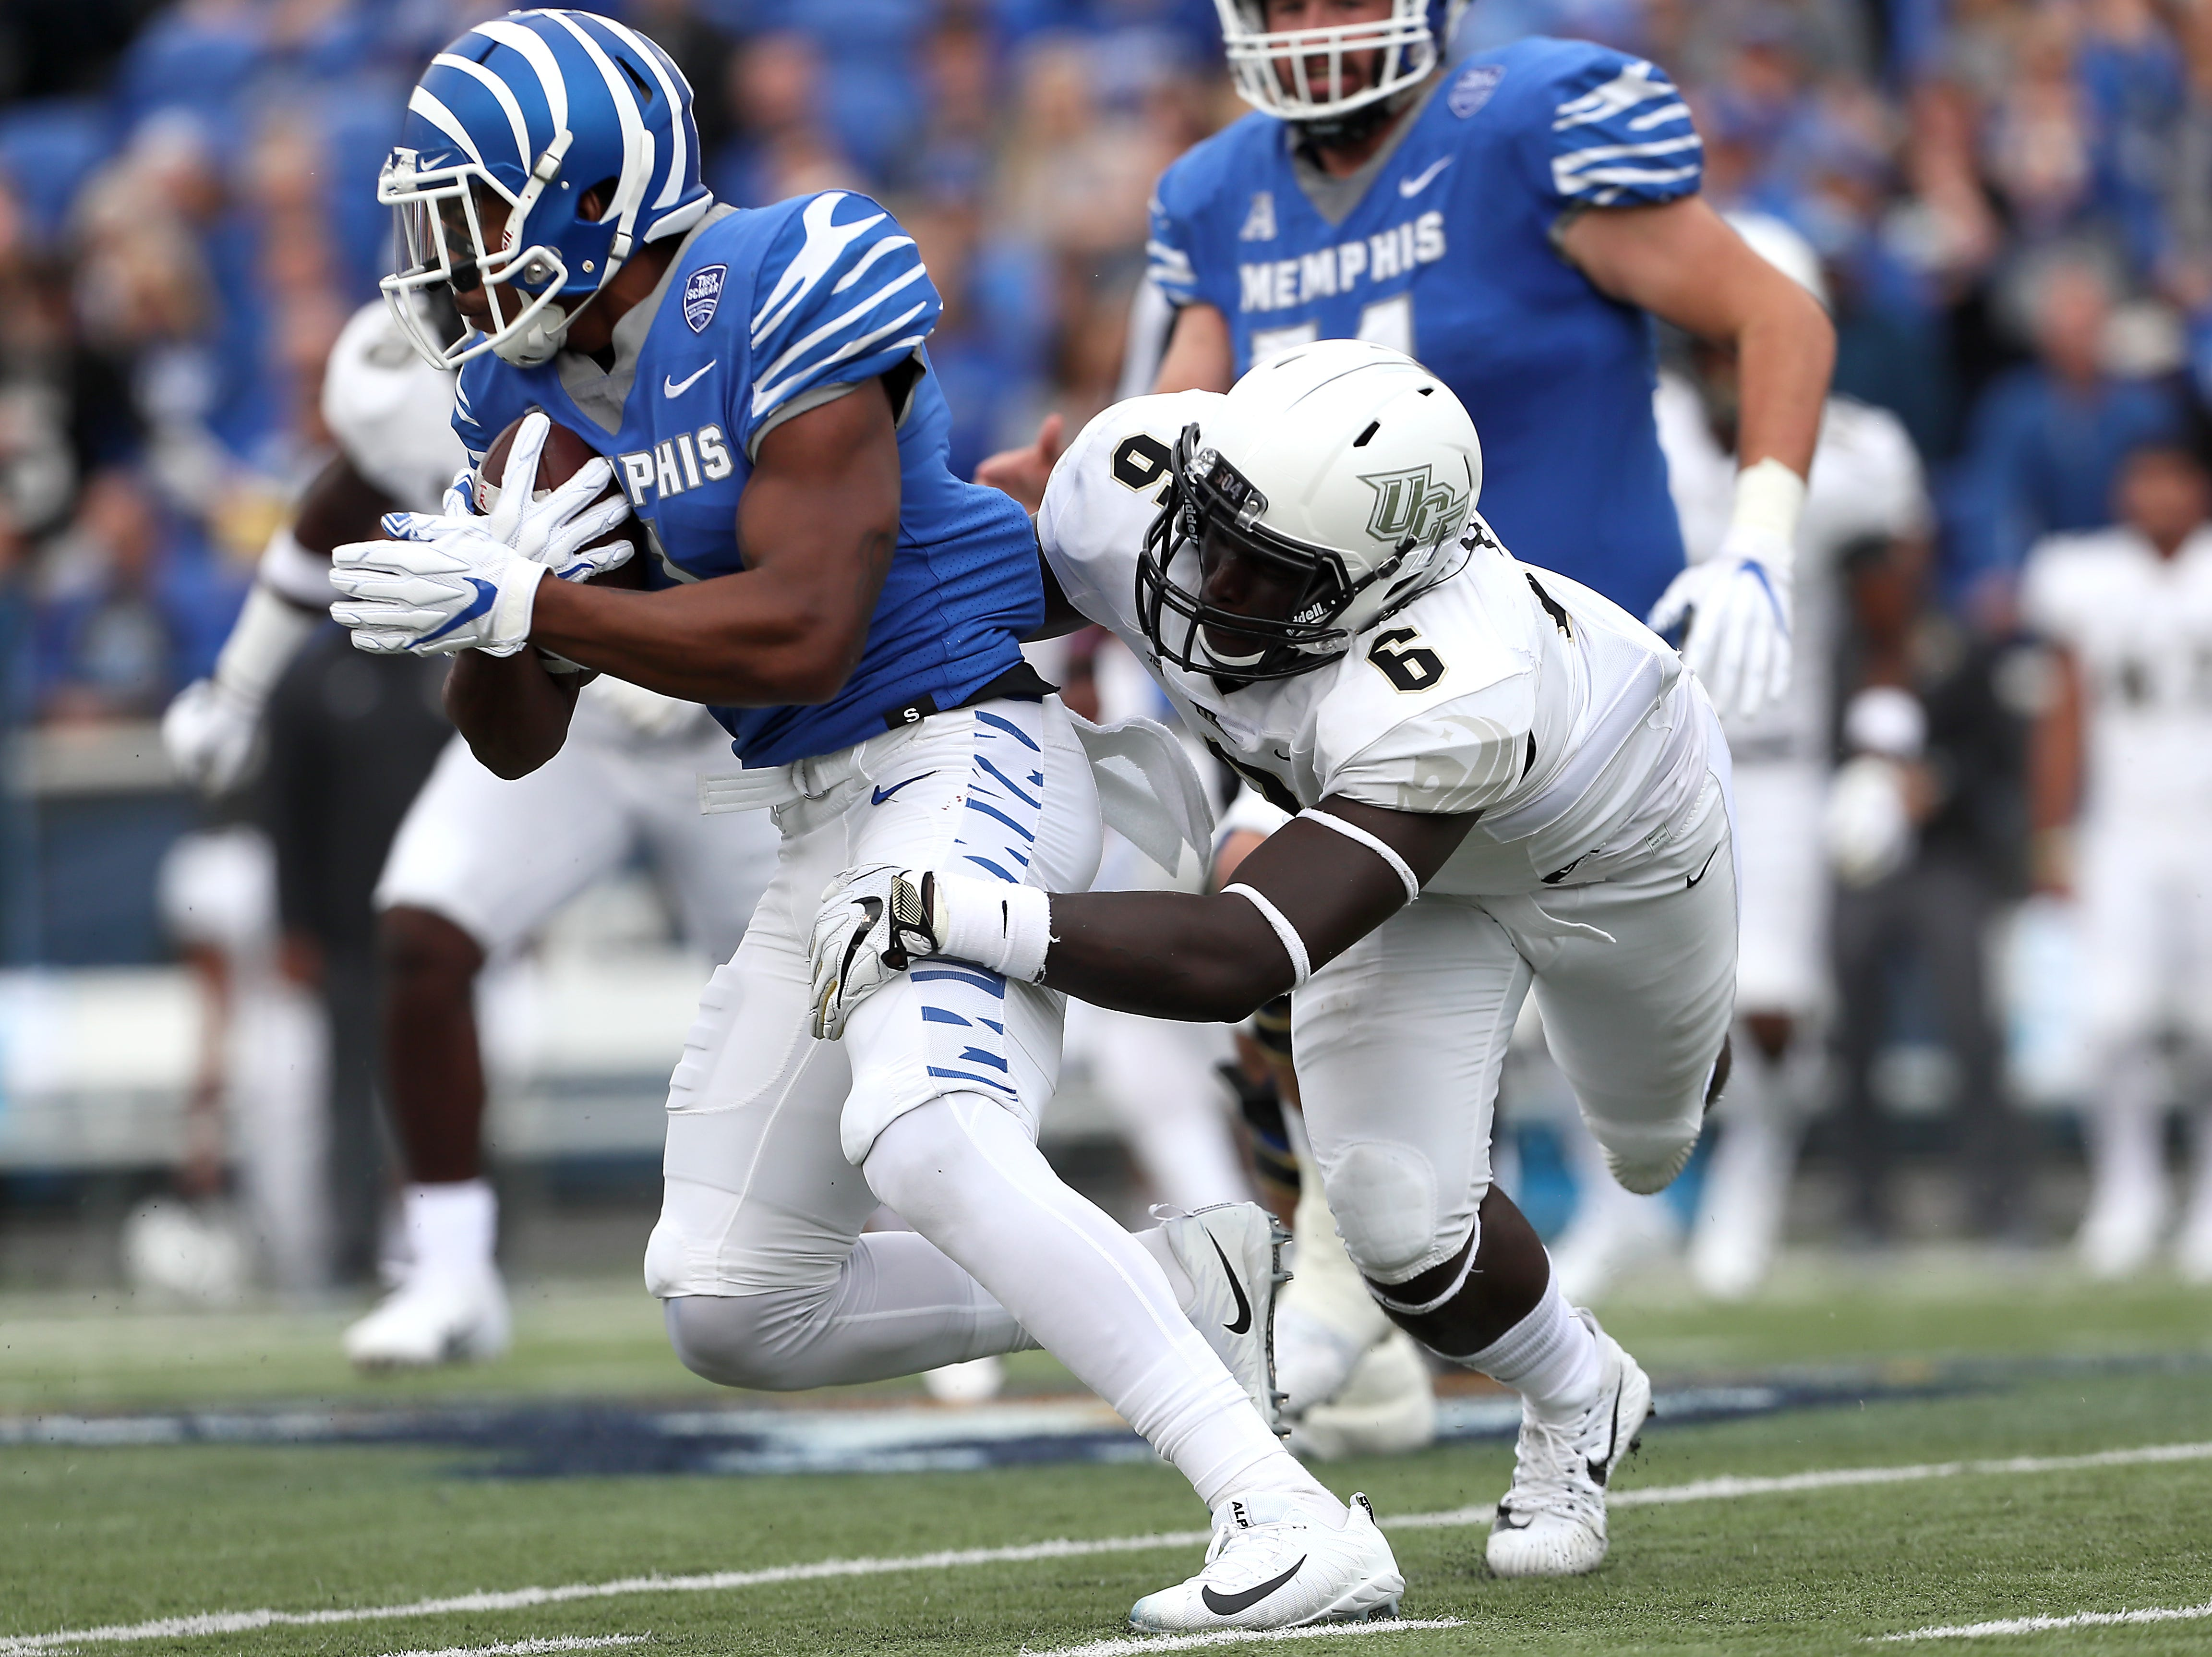 Memphis' Tony Pollard breaks away from UCF's Brendon Hayes during their game at the Liberty Bowl in Memphis, Tenn., Saturday, October 13, 2018.